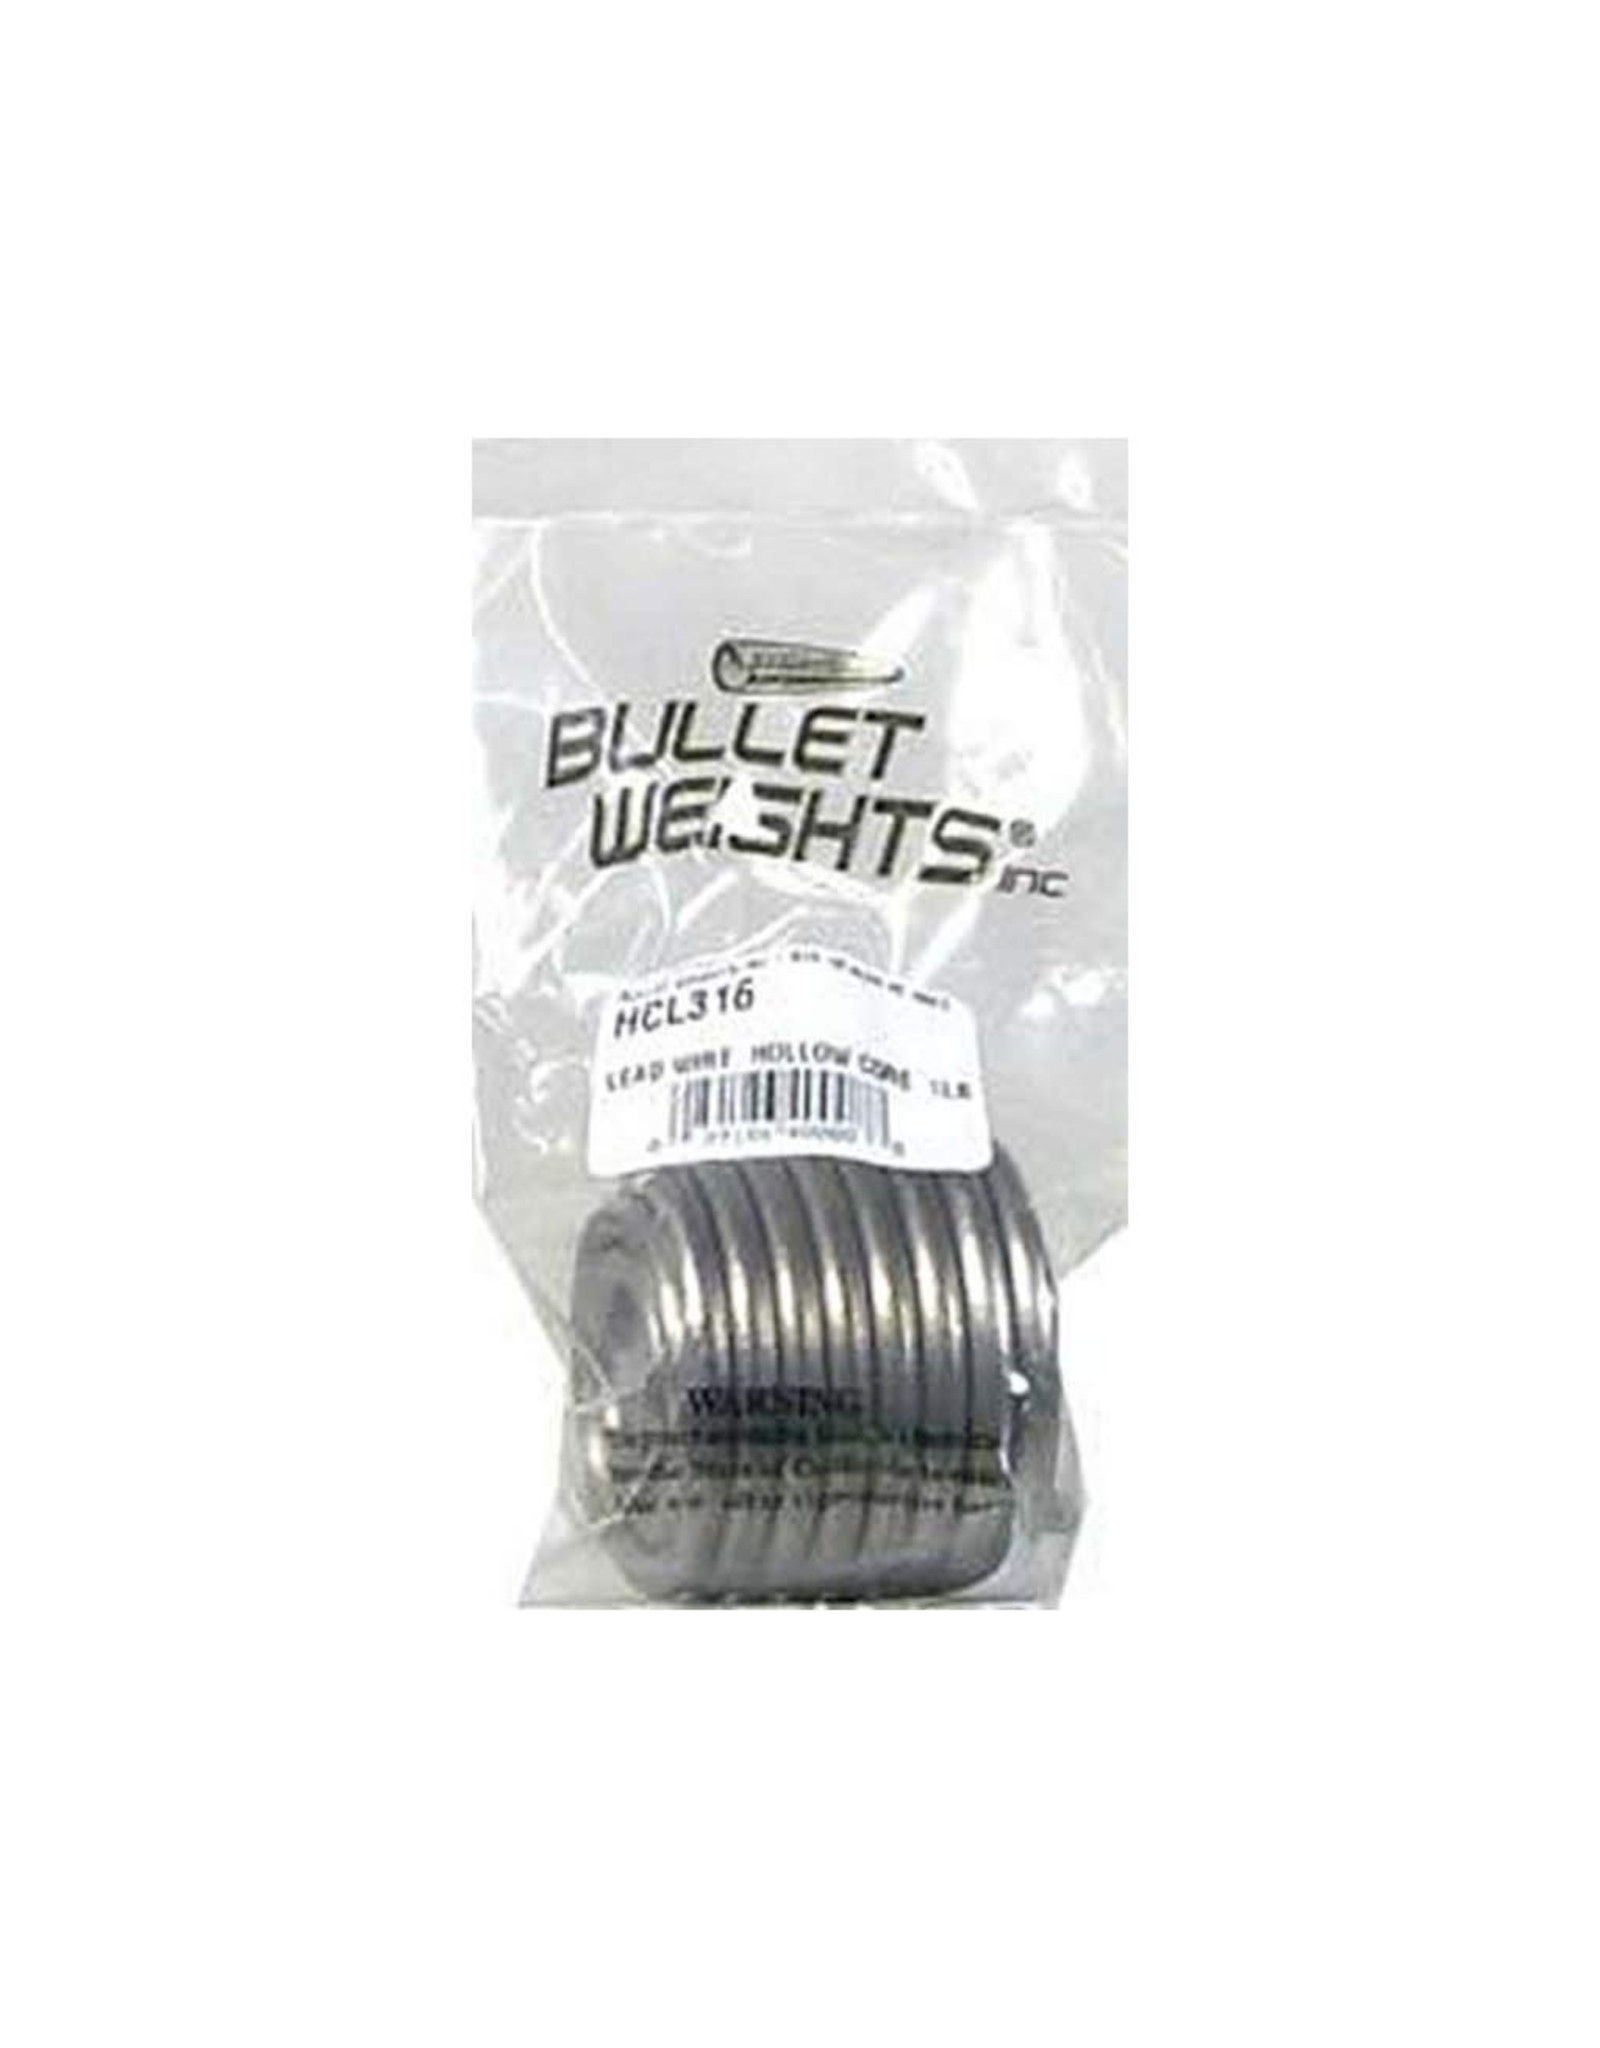 """Bullet Weights Bullet Weights Lead Wire 3/16"""" Dia. Hollow Core 1Lb Pencil"""